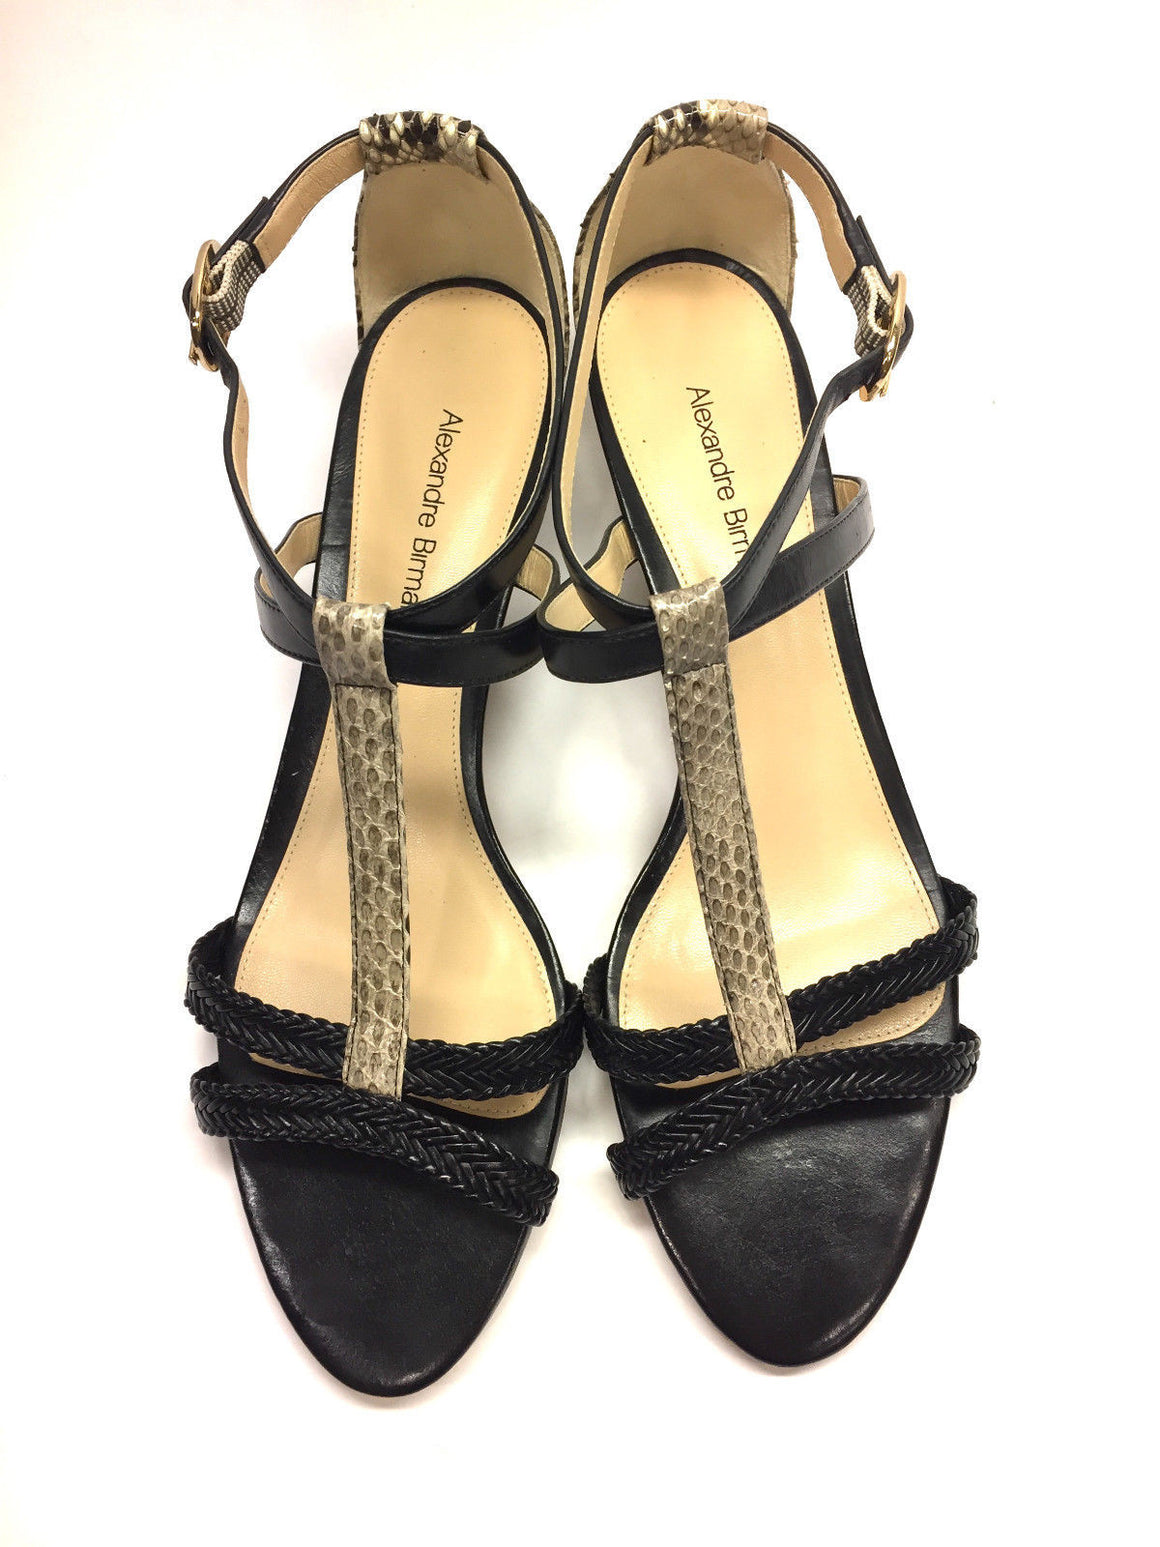 bisbiz.com ALEXANDRE BIRMAN   Black Braided Leather Python  T-Ankle Strap Sandals  Size: 37.5/7.5 - Bis Luxury Resale